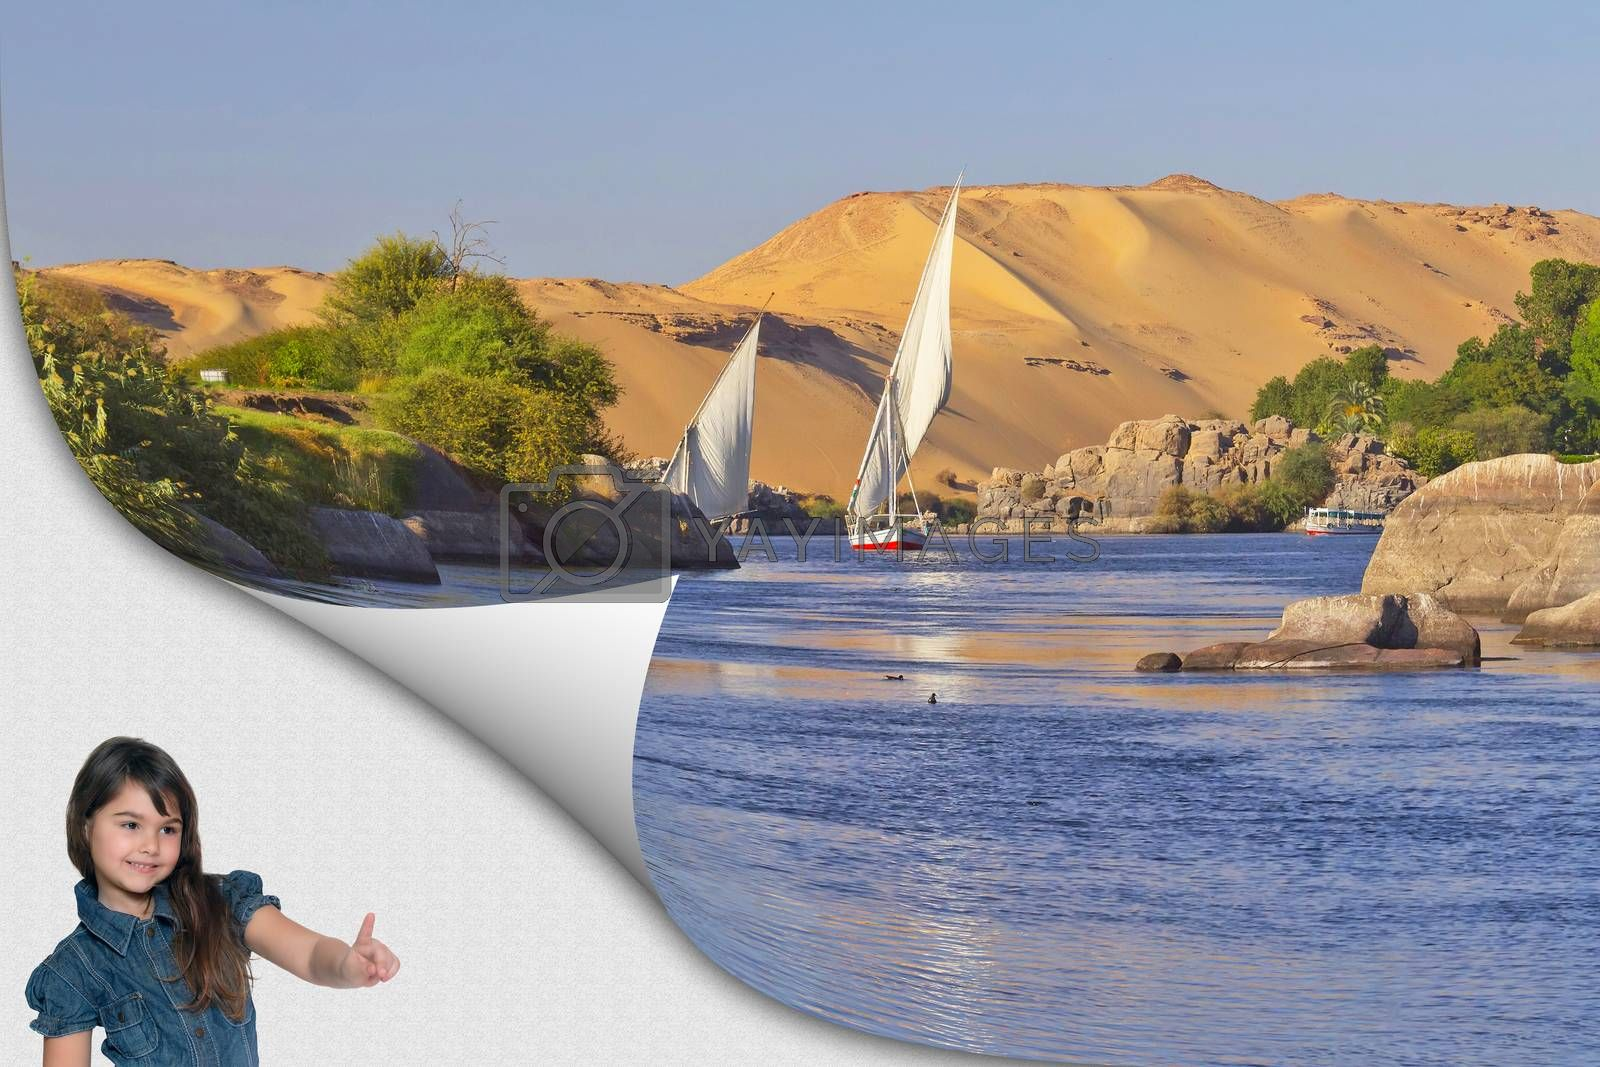 Cute tanned little girl standing in an exposed corner of the photo is pointing at the famous sailboats sailing on the Nile near Aswan with sand dunes in the background. Egypt.